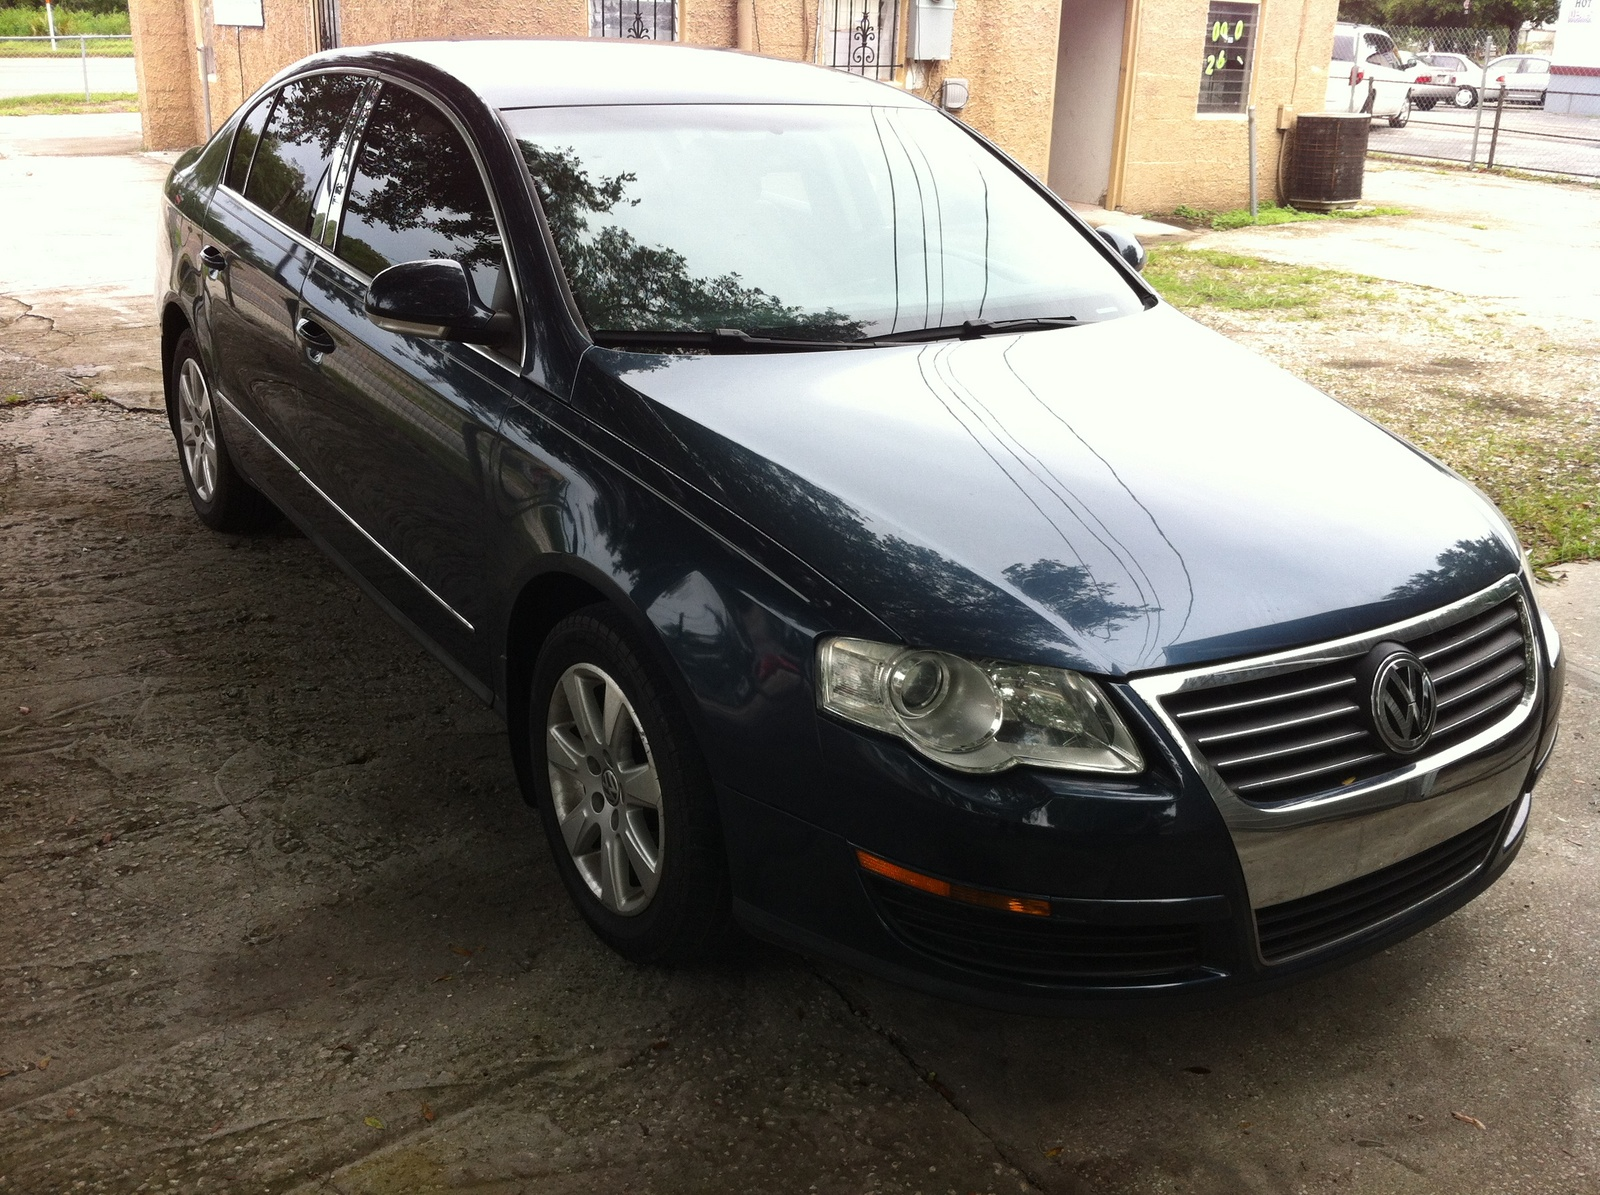 2007 Volkswagen Passat 2 0t Feuse Pictures To Pin On